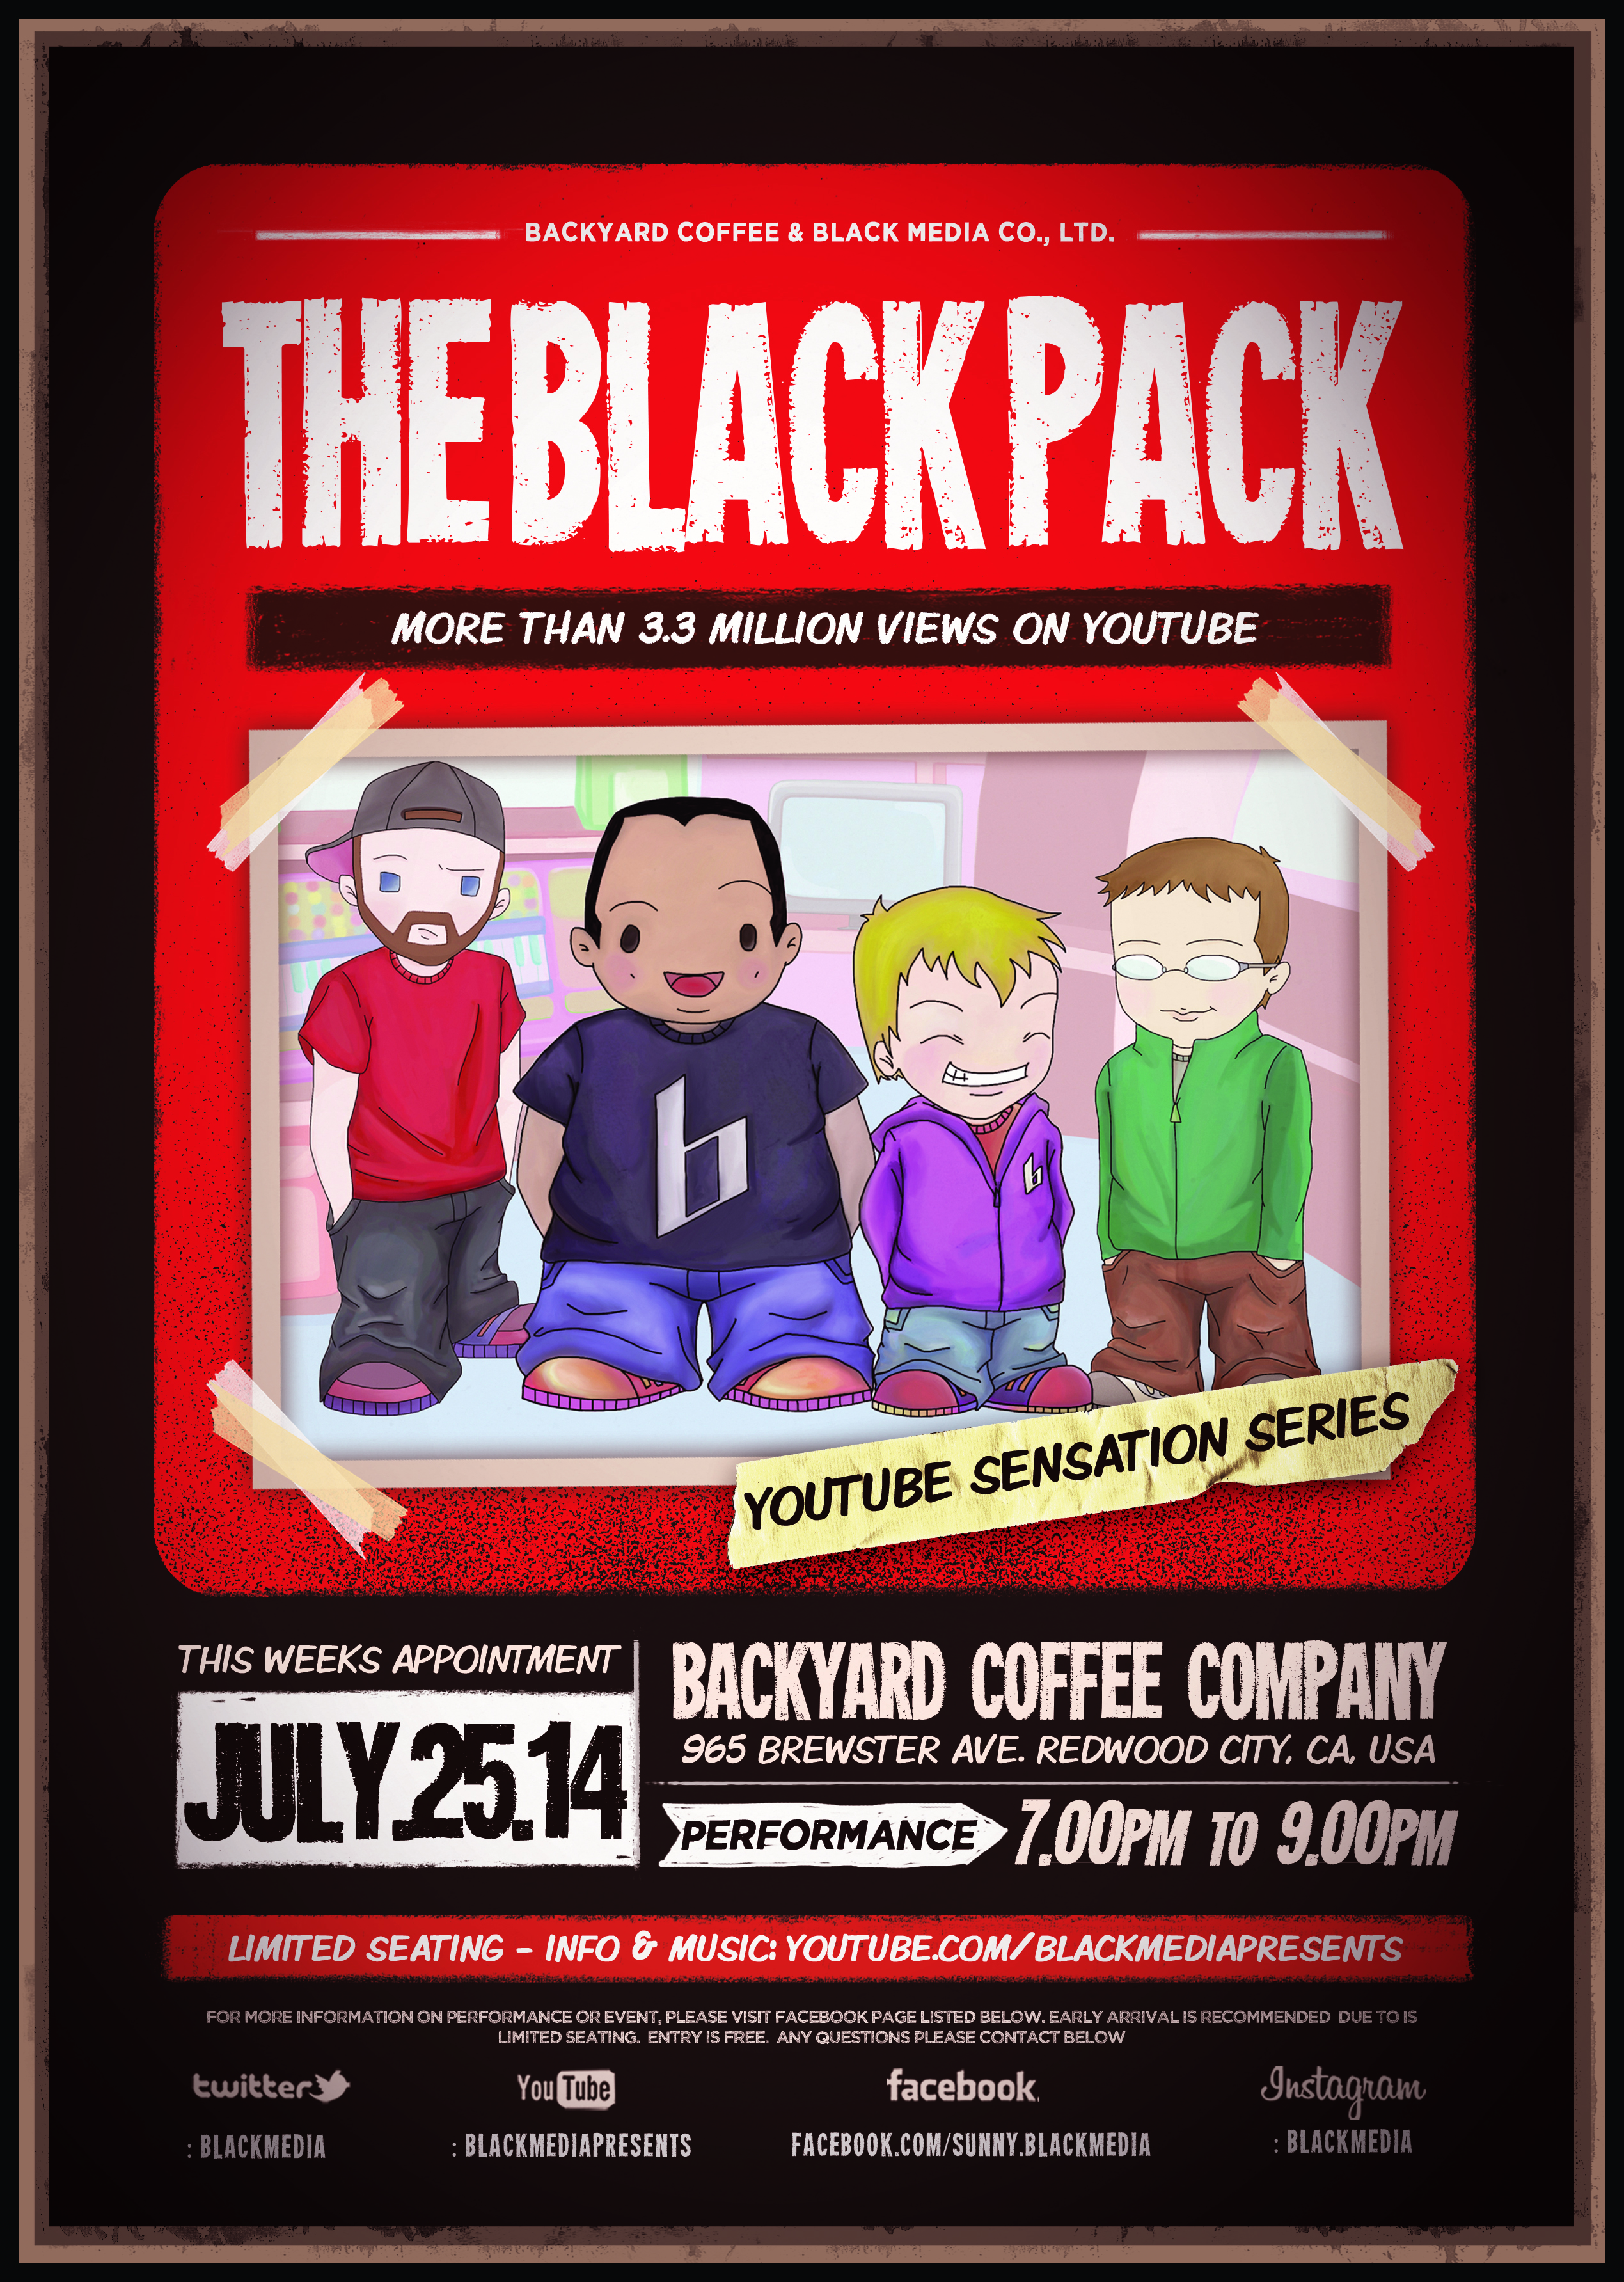 Black Pack Live Show - Redwood City